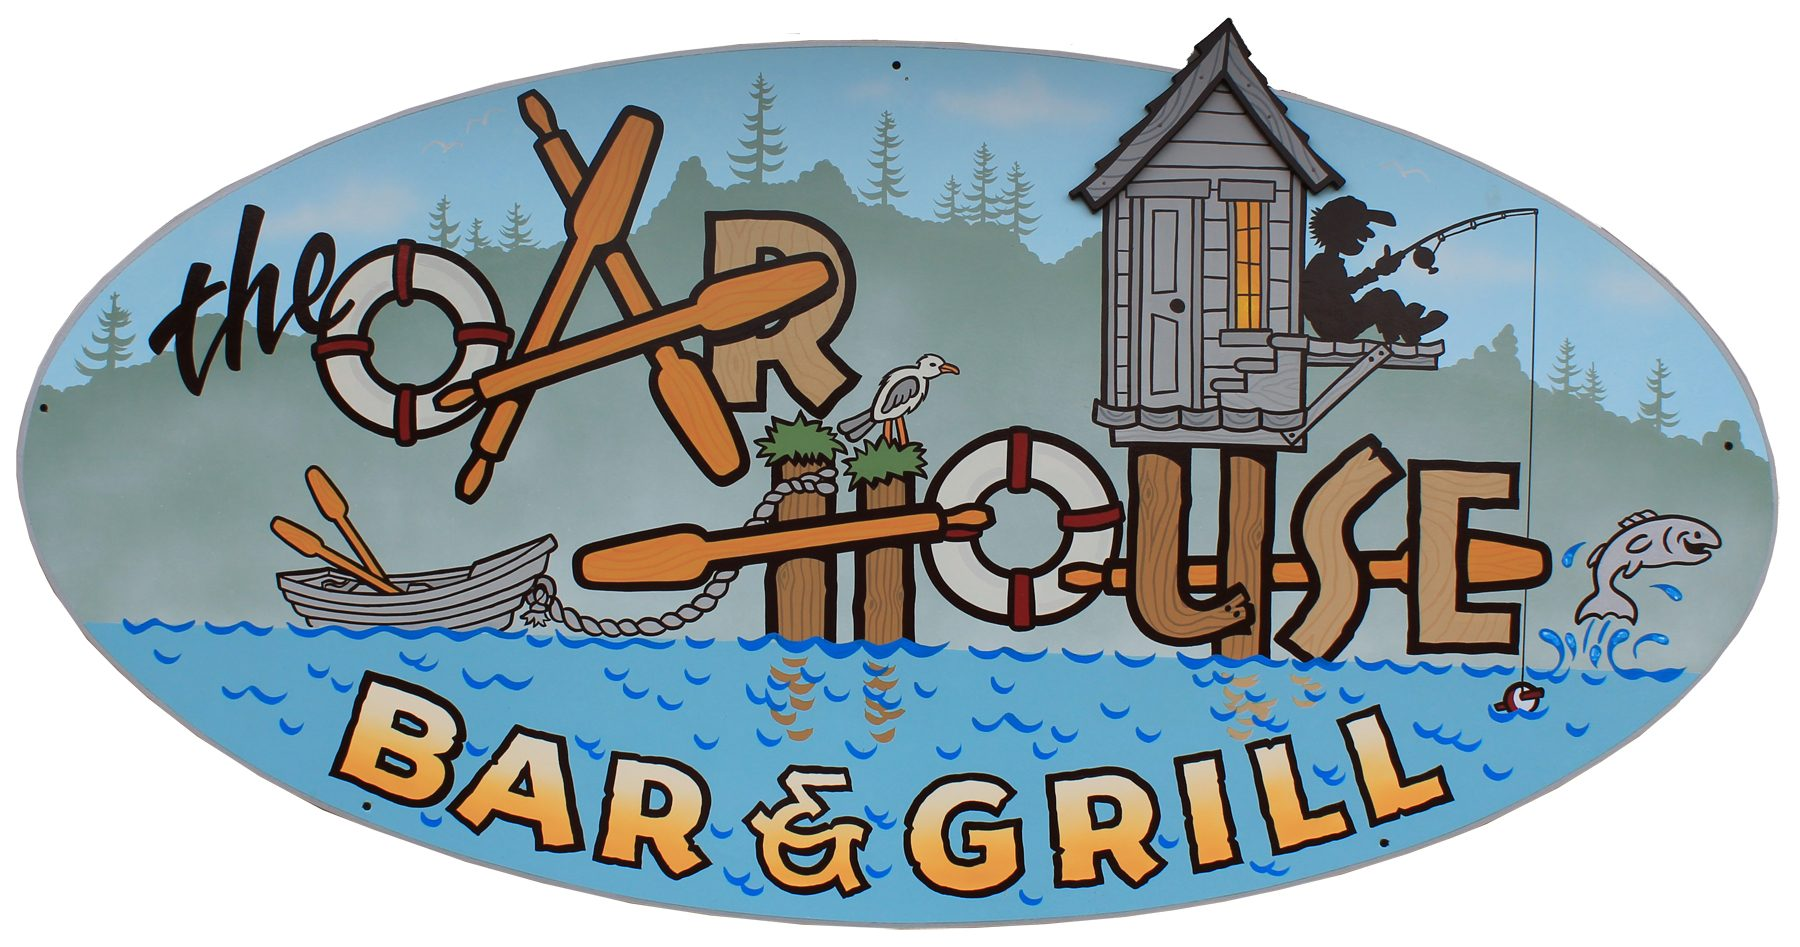 The Oar House Bar and Grill